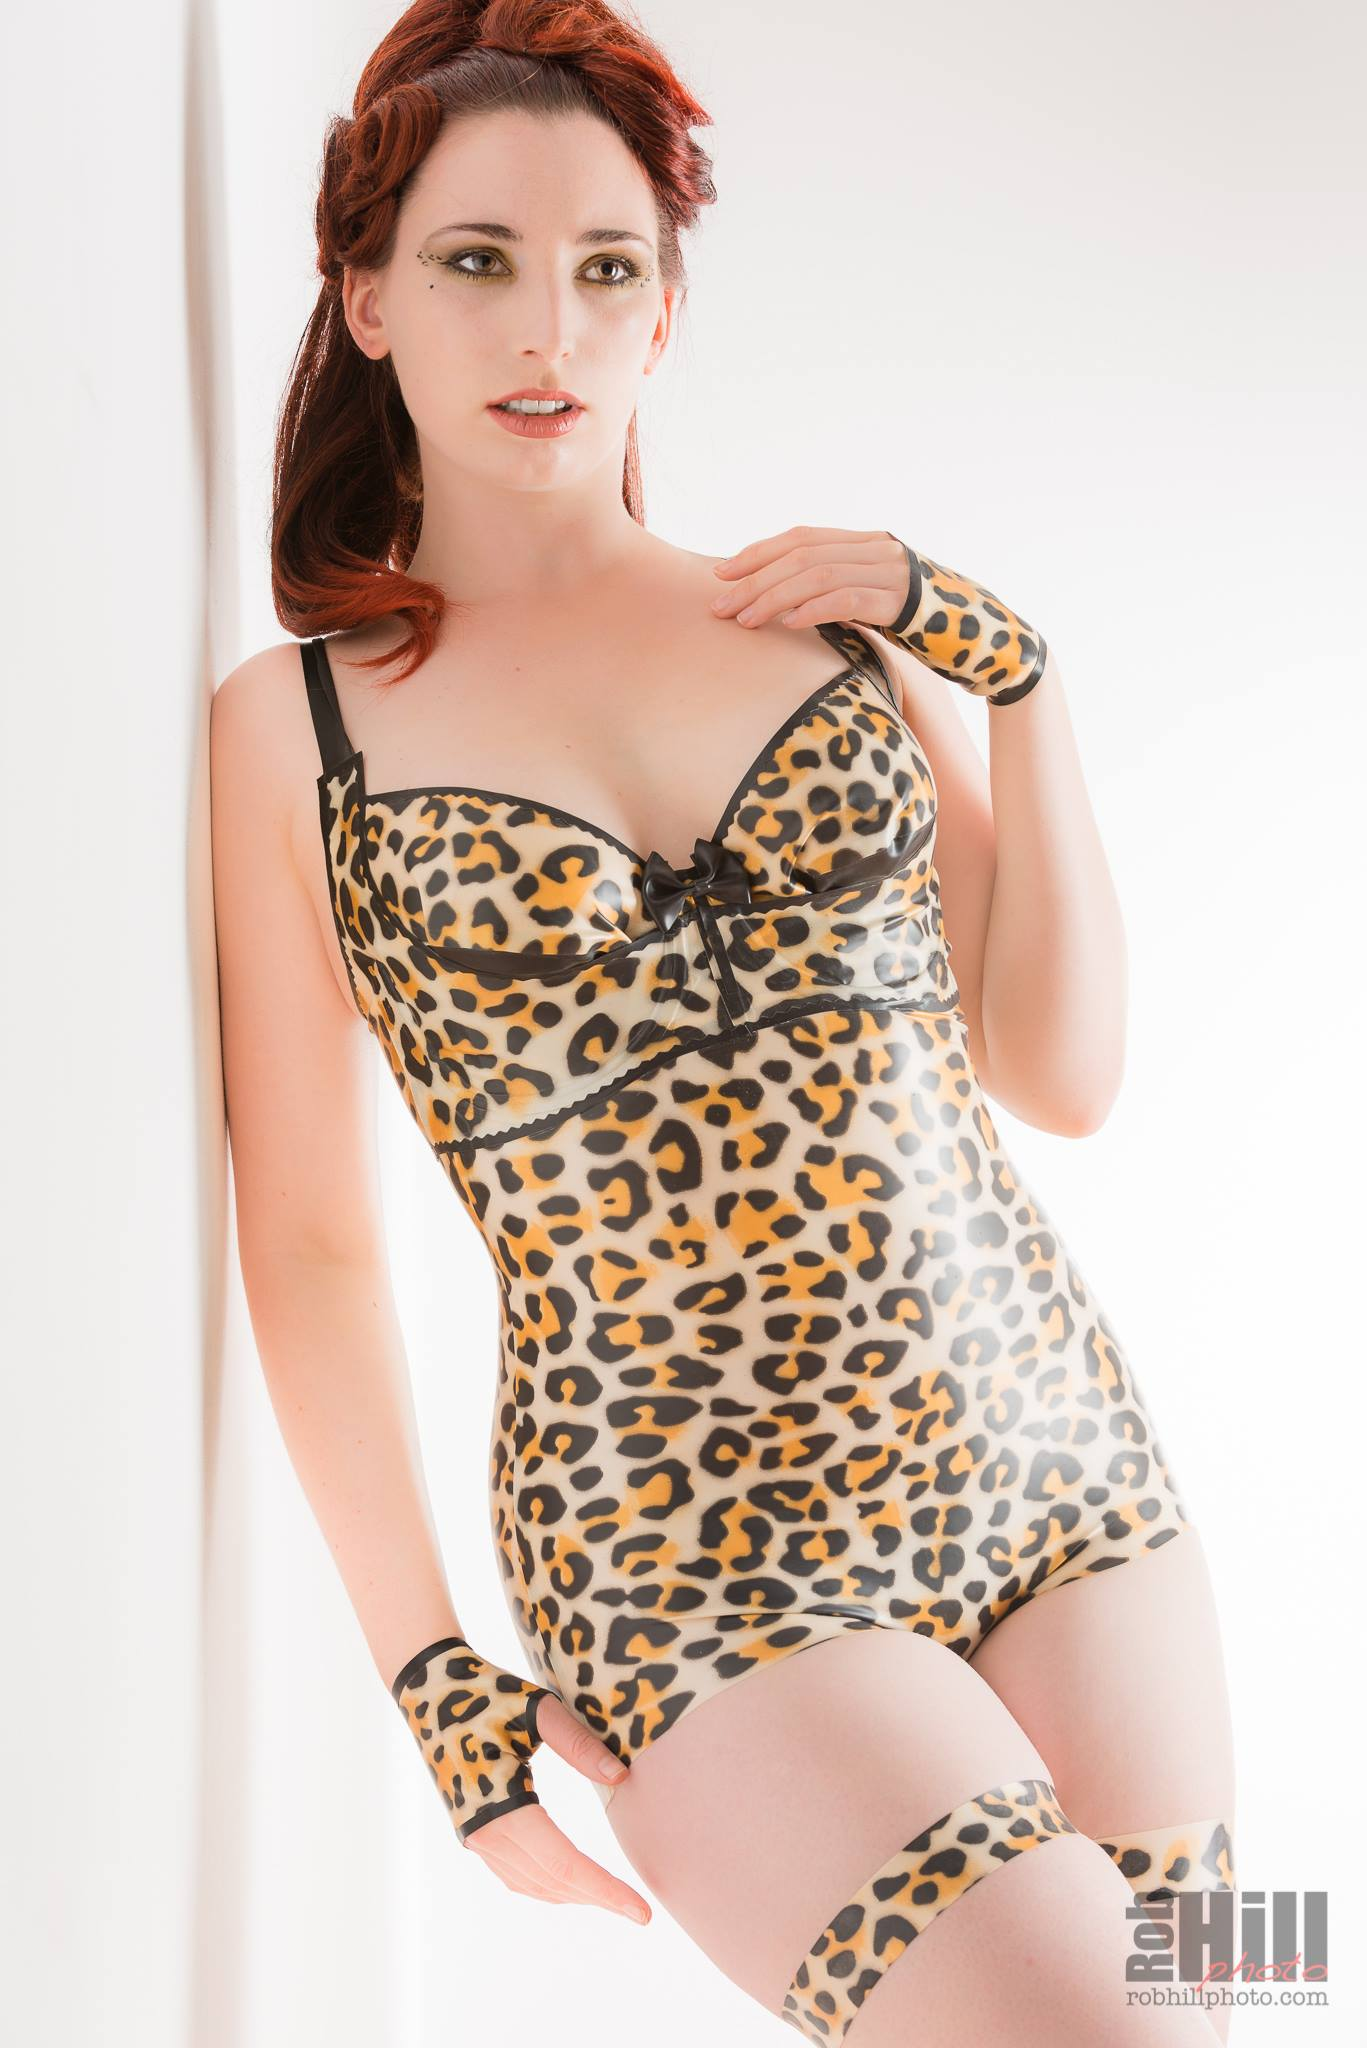 The Ever Popular Leopard Print Latex Dawnamatrix Clothing Lingerie High Waisted Panty Girdle